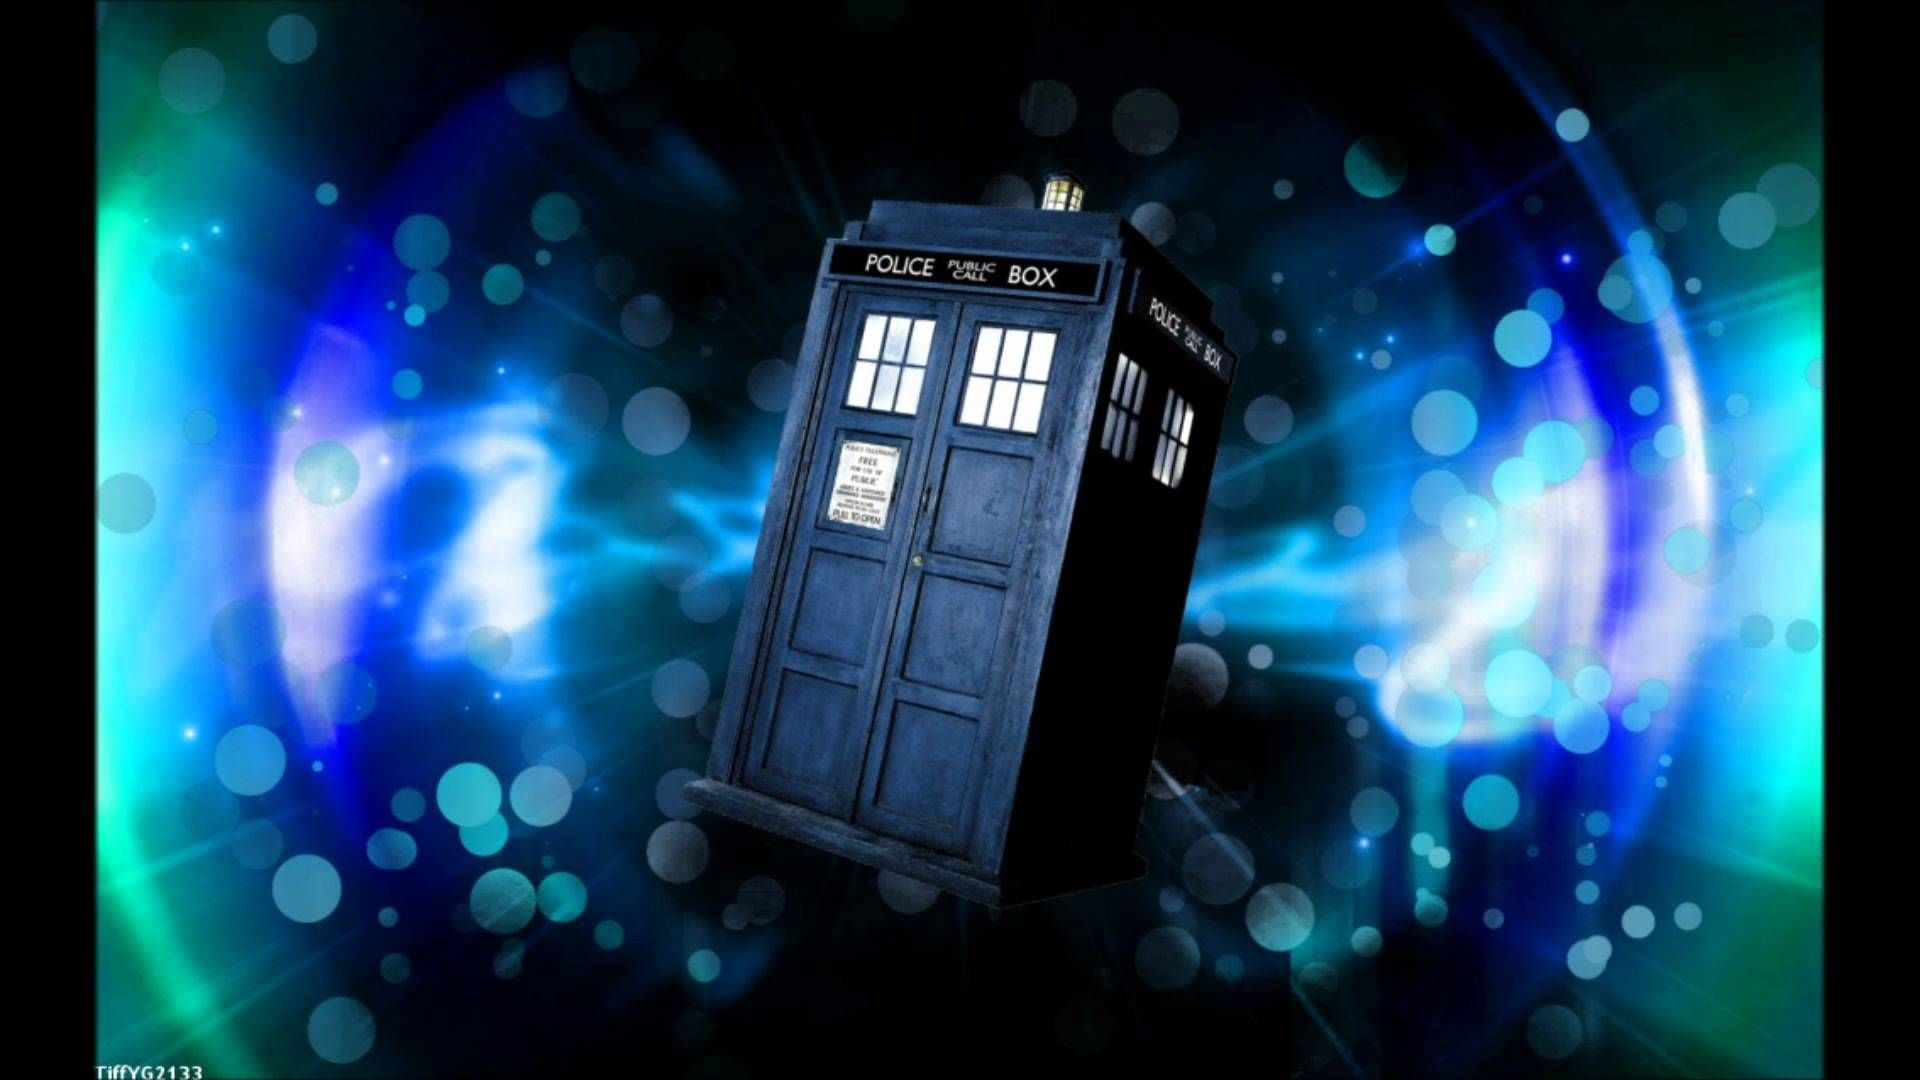 Res: 1920x1080, All sound effects of the TARDIS. Download sounds: http://www.